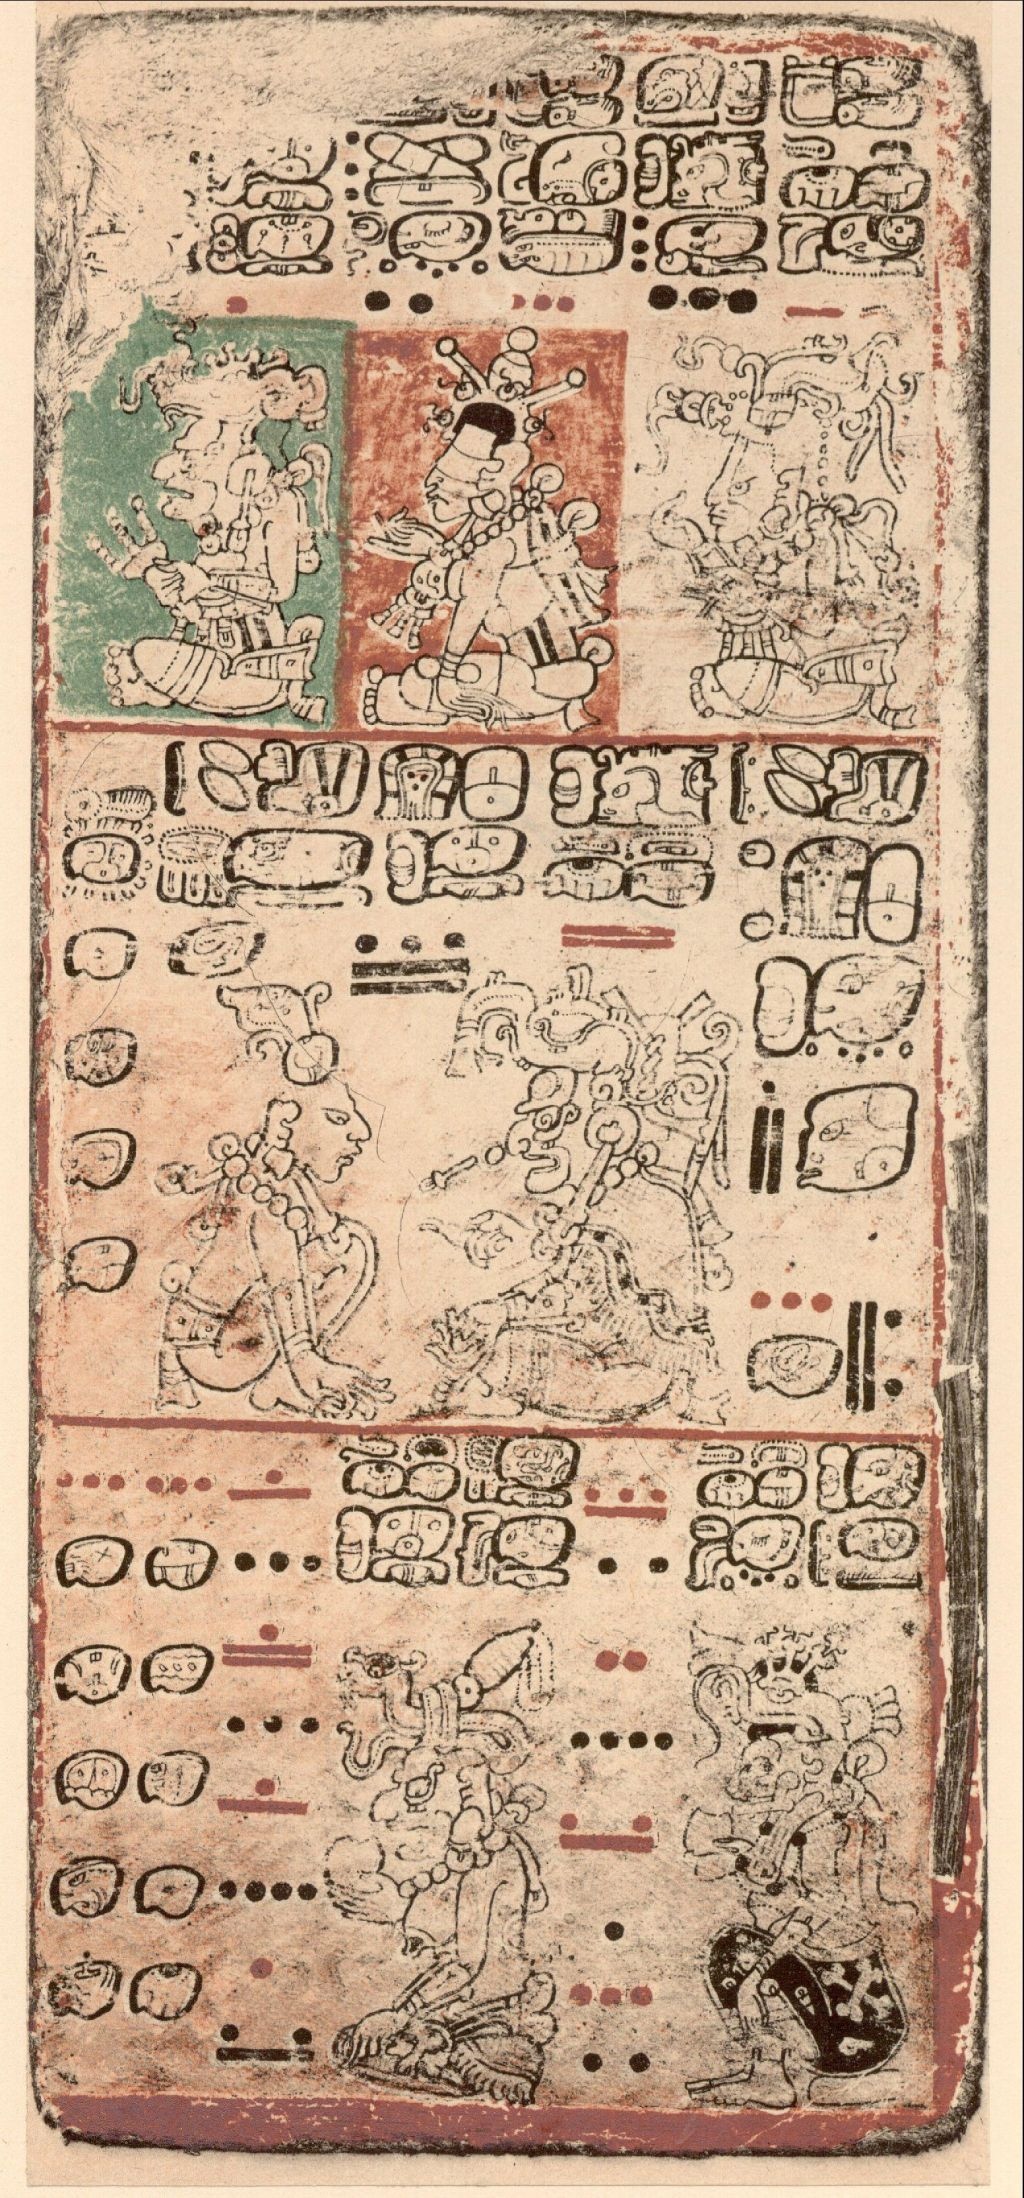 Why the mayan empire collapsed